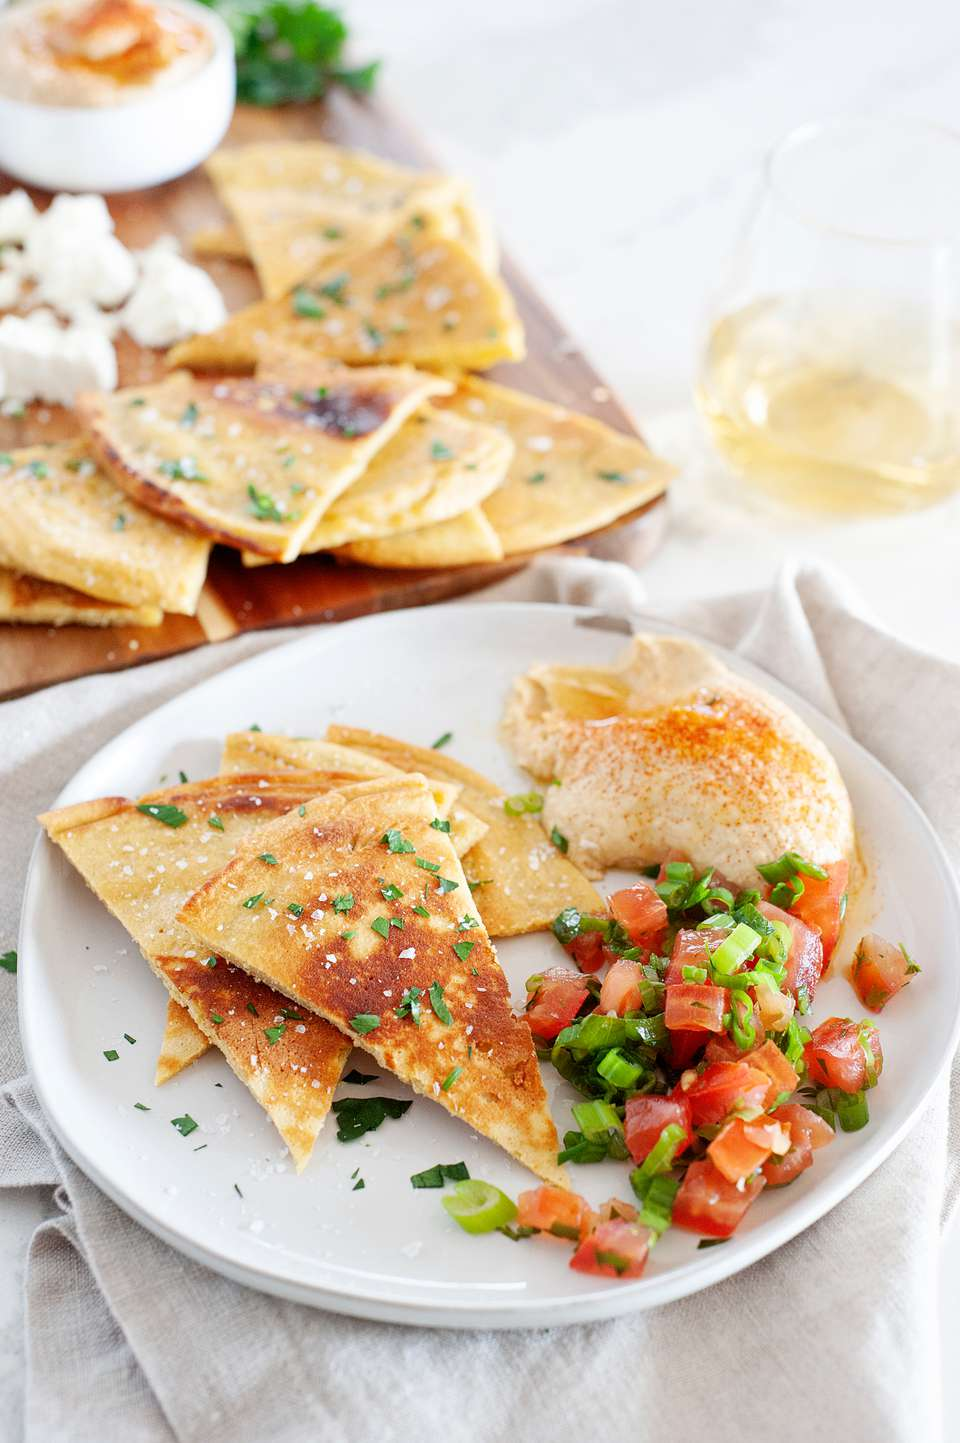 Socca—Gluten-Free Chickpea Flour Flatbread cut into triangles and on a plate with chopped vegetables.